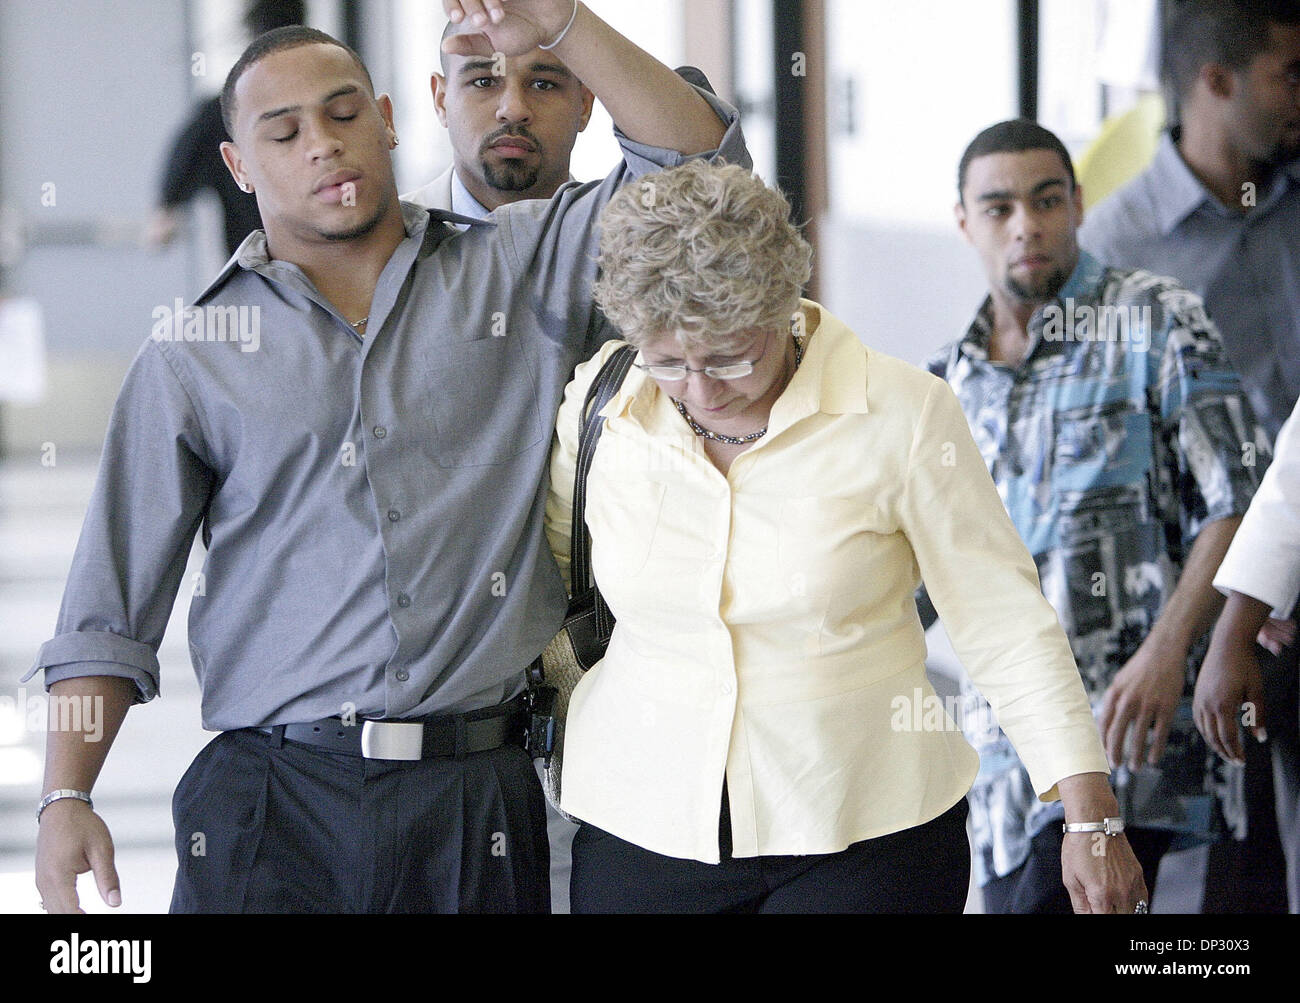 Jun 14, 2006; West Palm Beach, FL, USA; Jamie Lee Daniel pled guilty to killing his former wife Renay and their son Sabree and was sentenced to 50 years in prison with no chance of early release today at the Palm Beach County Courthouse in West Palm Beach. Family members of murder victims were present in Judge Krista Marx's courtroom. Family members delined to talk to the press as  - Stock Image